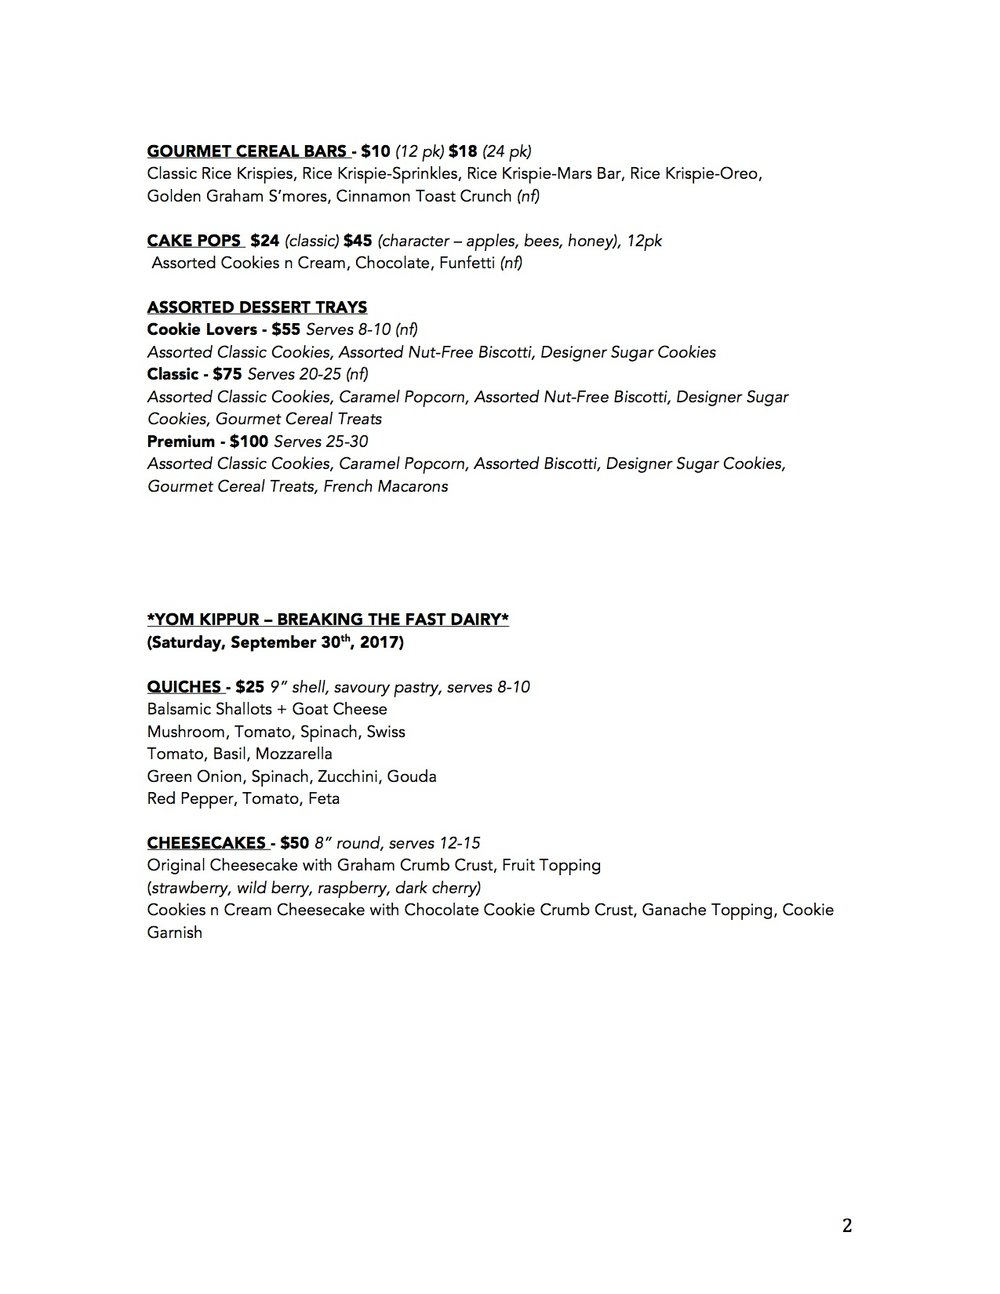 PRETTY SWEET PASTRY BOUTIQUE HIGH HOLIDAYS MENU 2017 p2.jpg